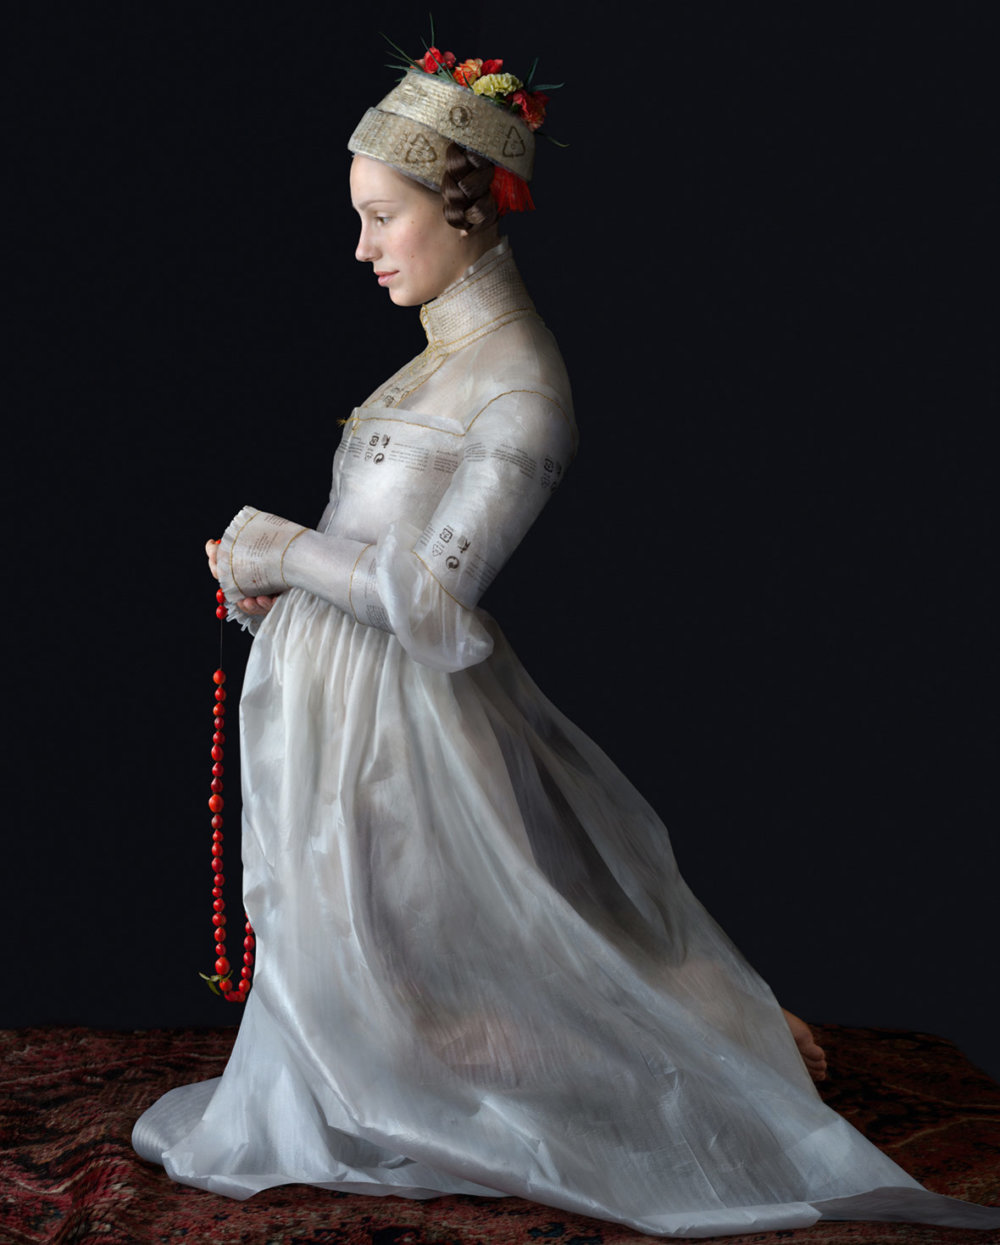 Discarded Packaging Recycled Into Renaissance Costumes By Suzanne Jongmans 6